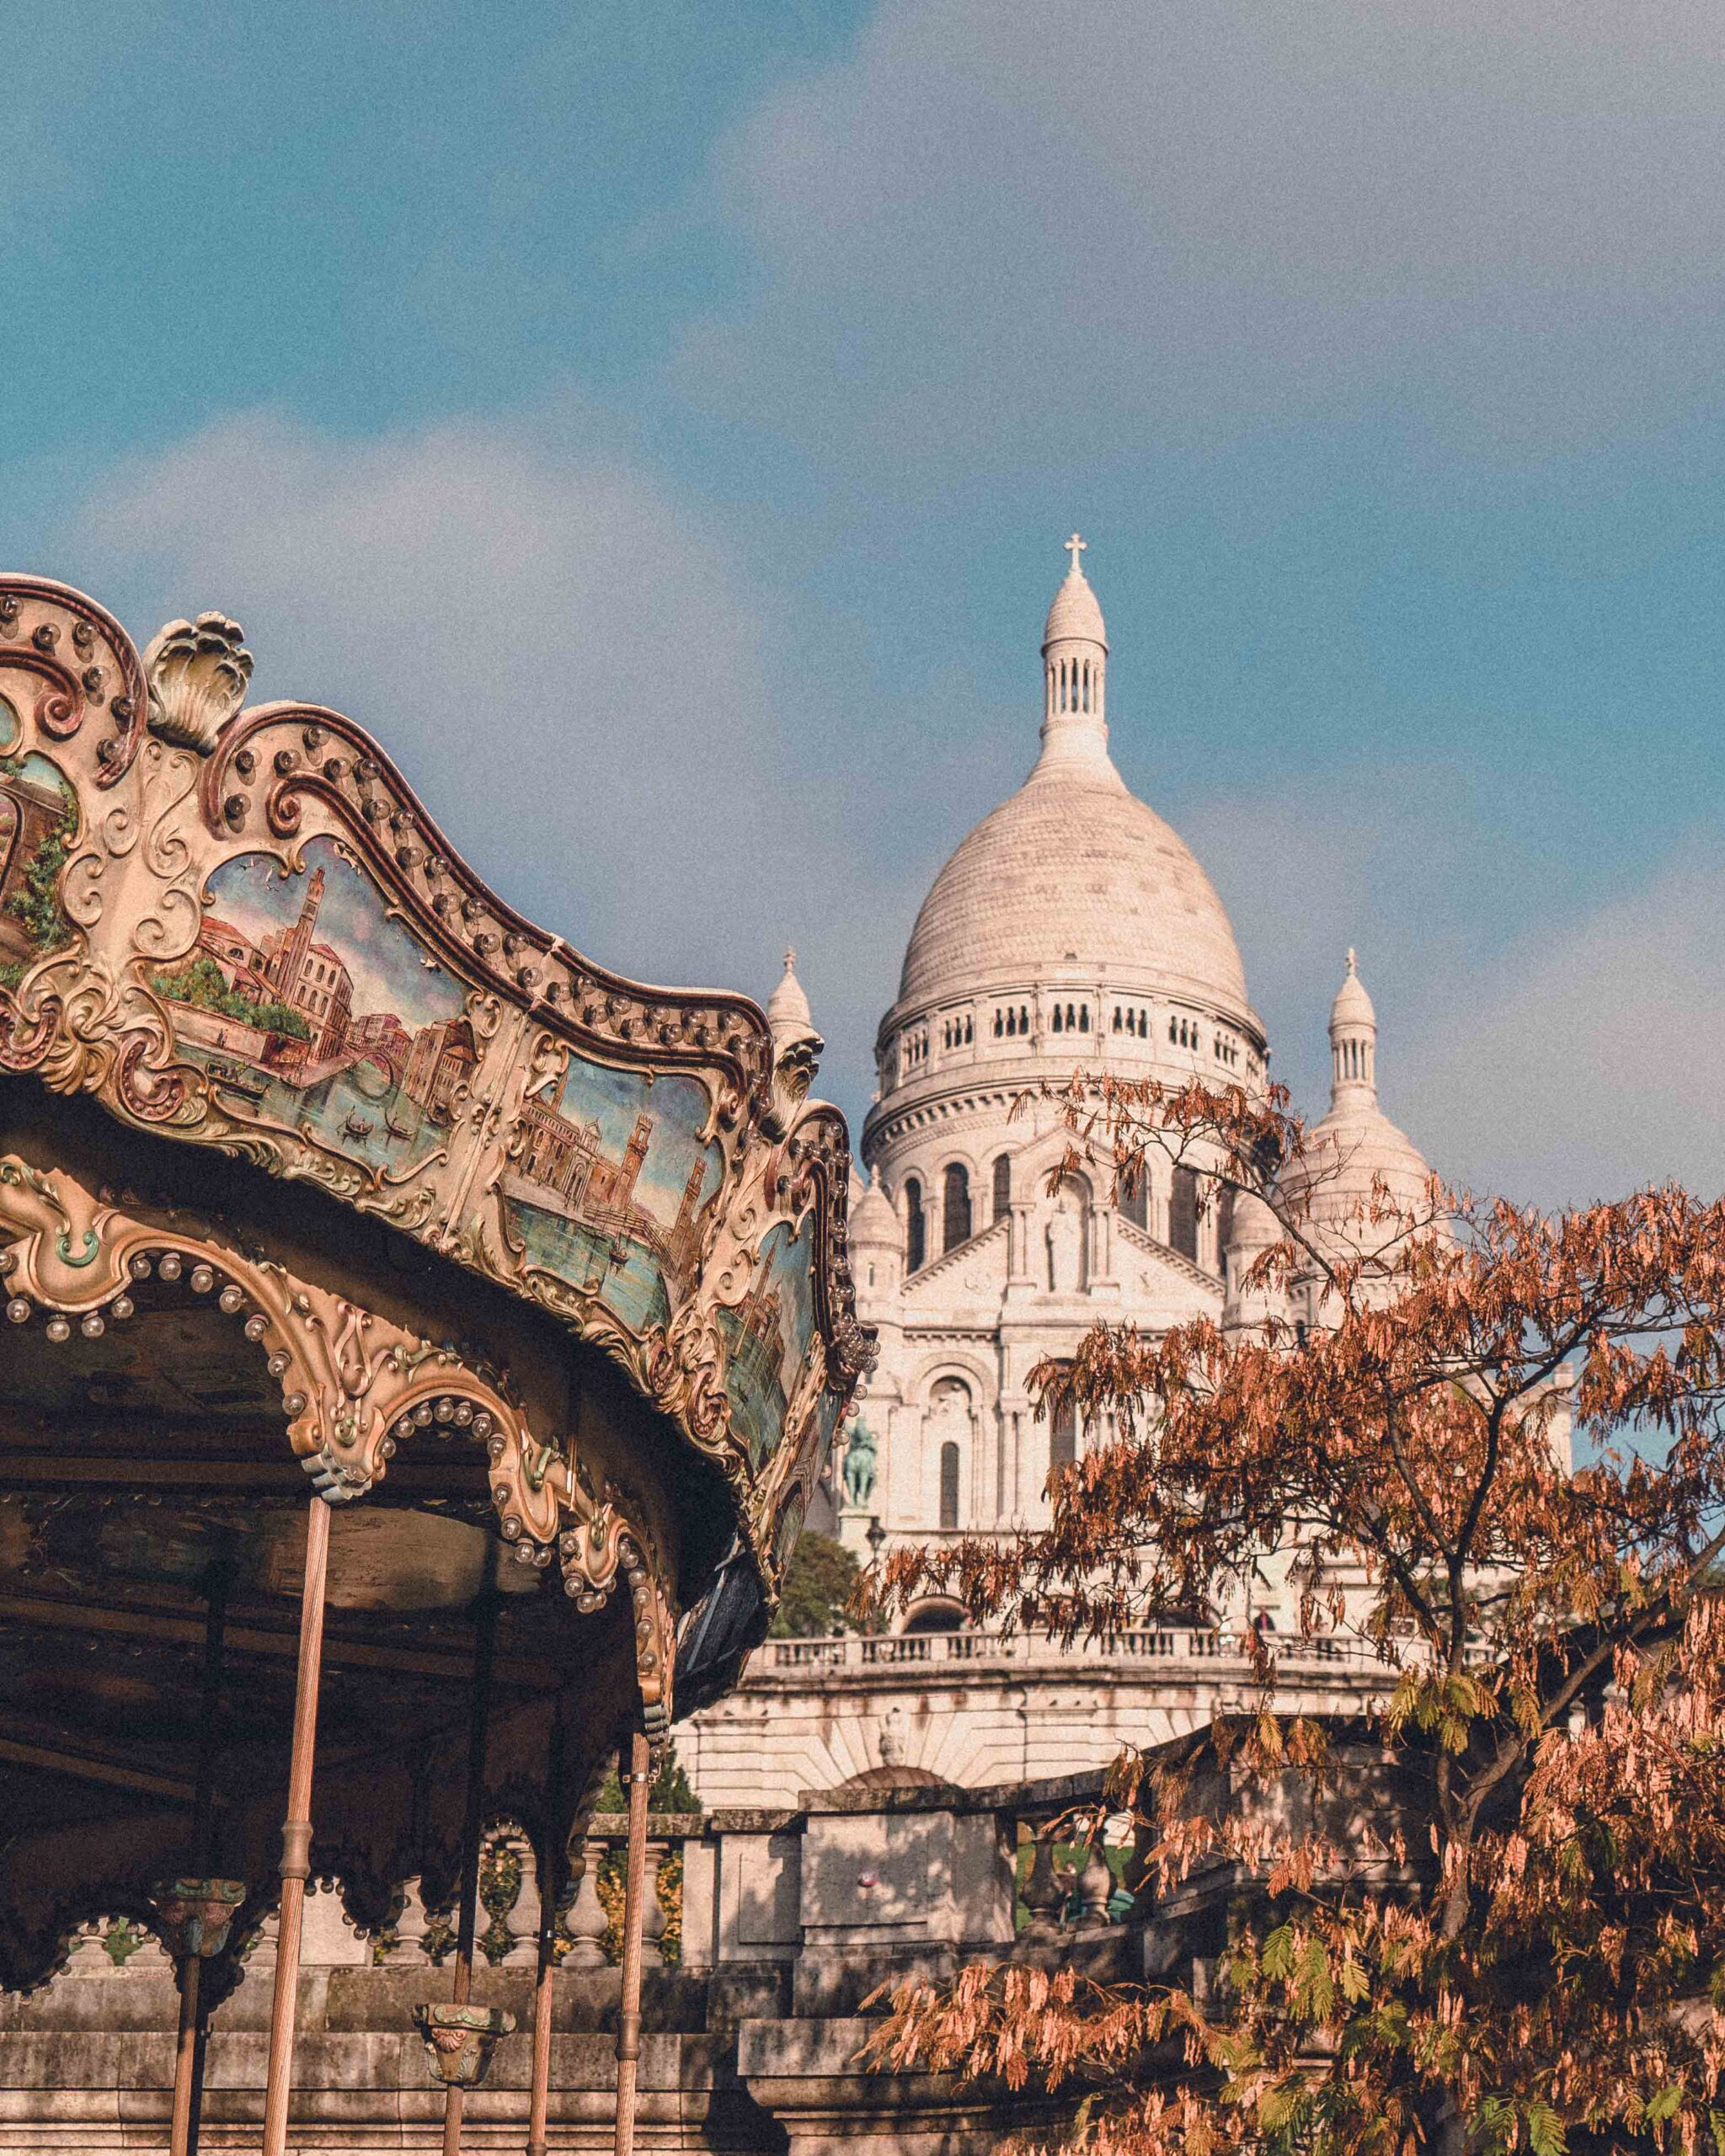 Here's your complete and ultimate guide to the best of Montmartre; attractions, what to do in Montmartre, and top things to do in the 18th arrondissement of Paris, France